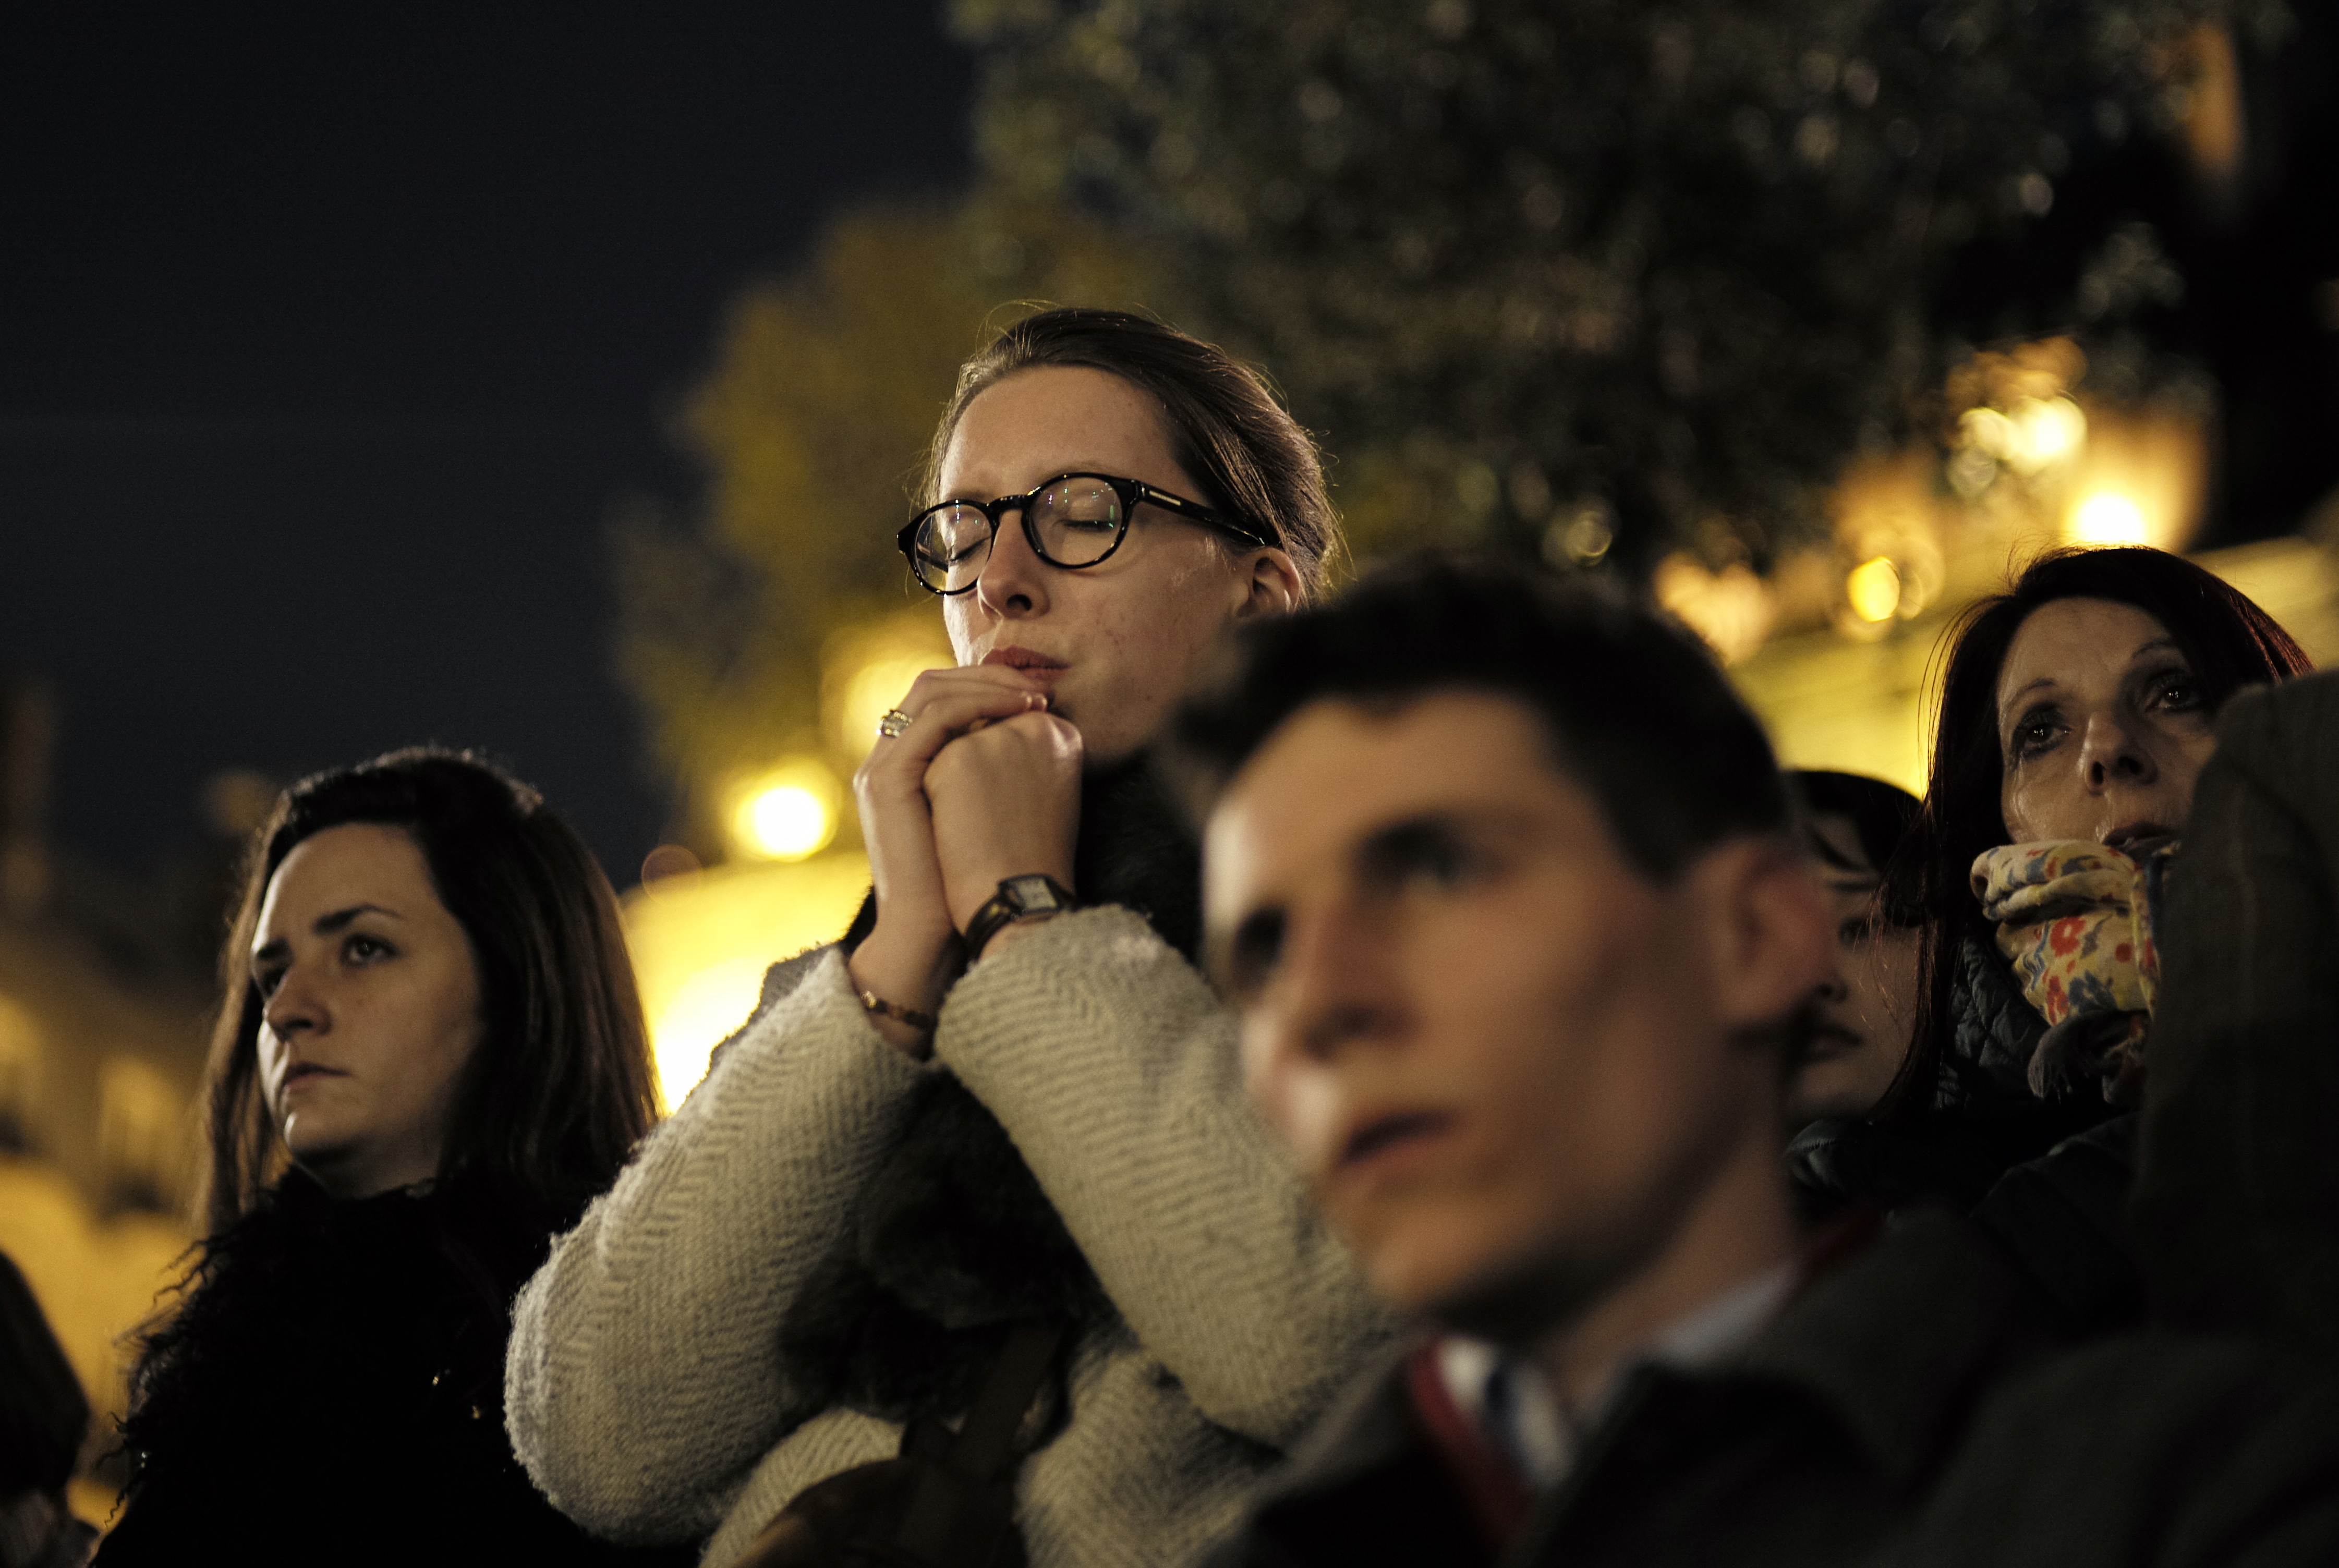 People attend a vigil in Paris, Tuesday April 16, 2019. Firefighters declared success Tuesday in a more than 12-hour battle to extinguish an inferno engulfing Paris' iconic Notre Dame cathedral that claimed its spire and roof but spared its bell towers.